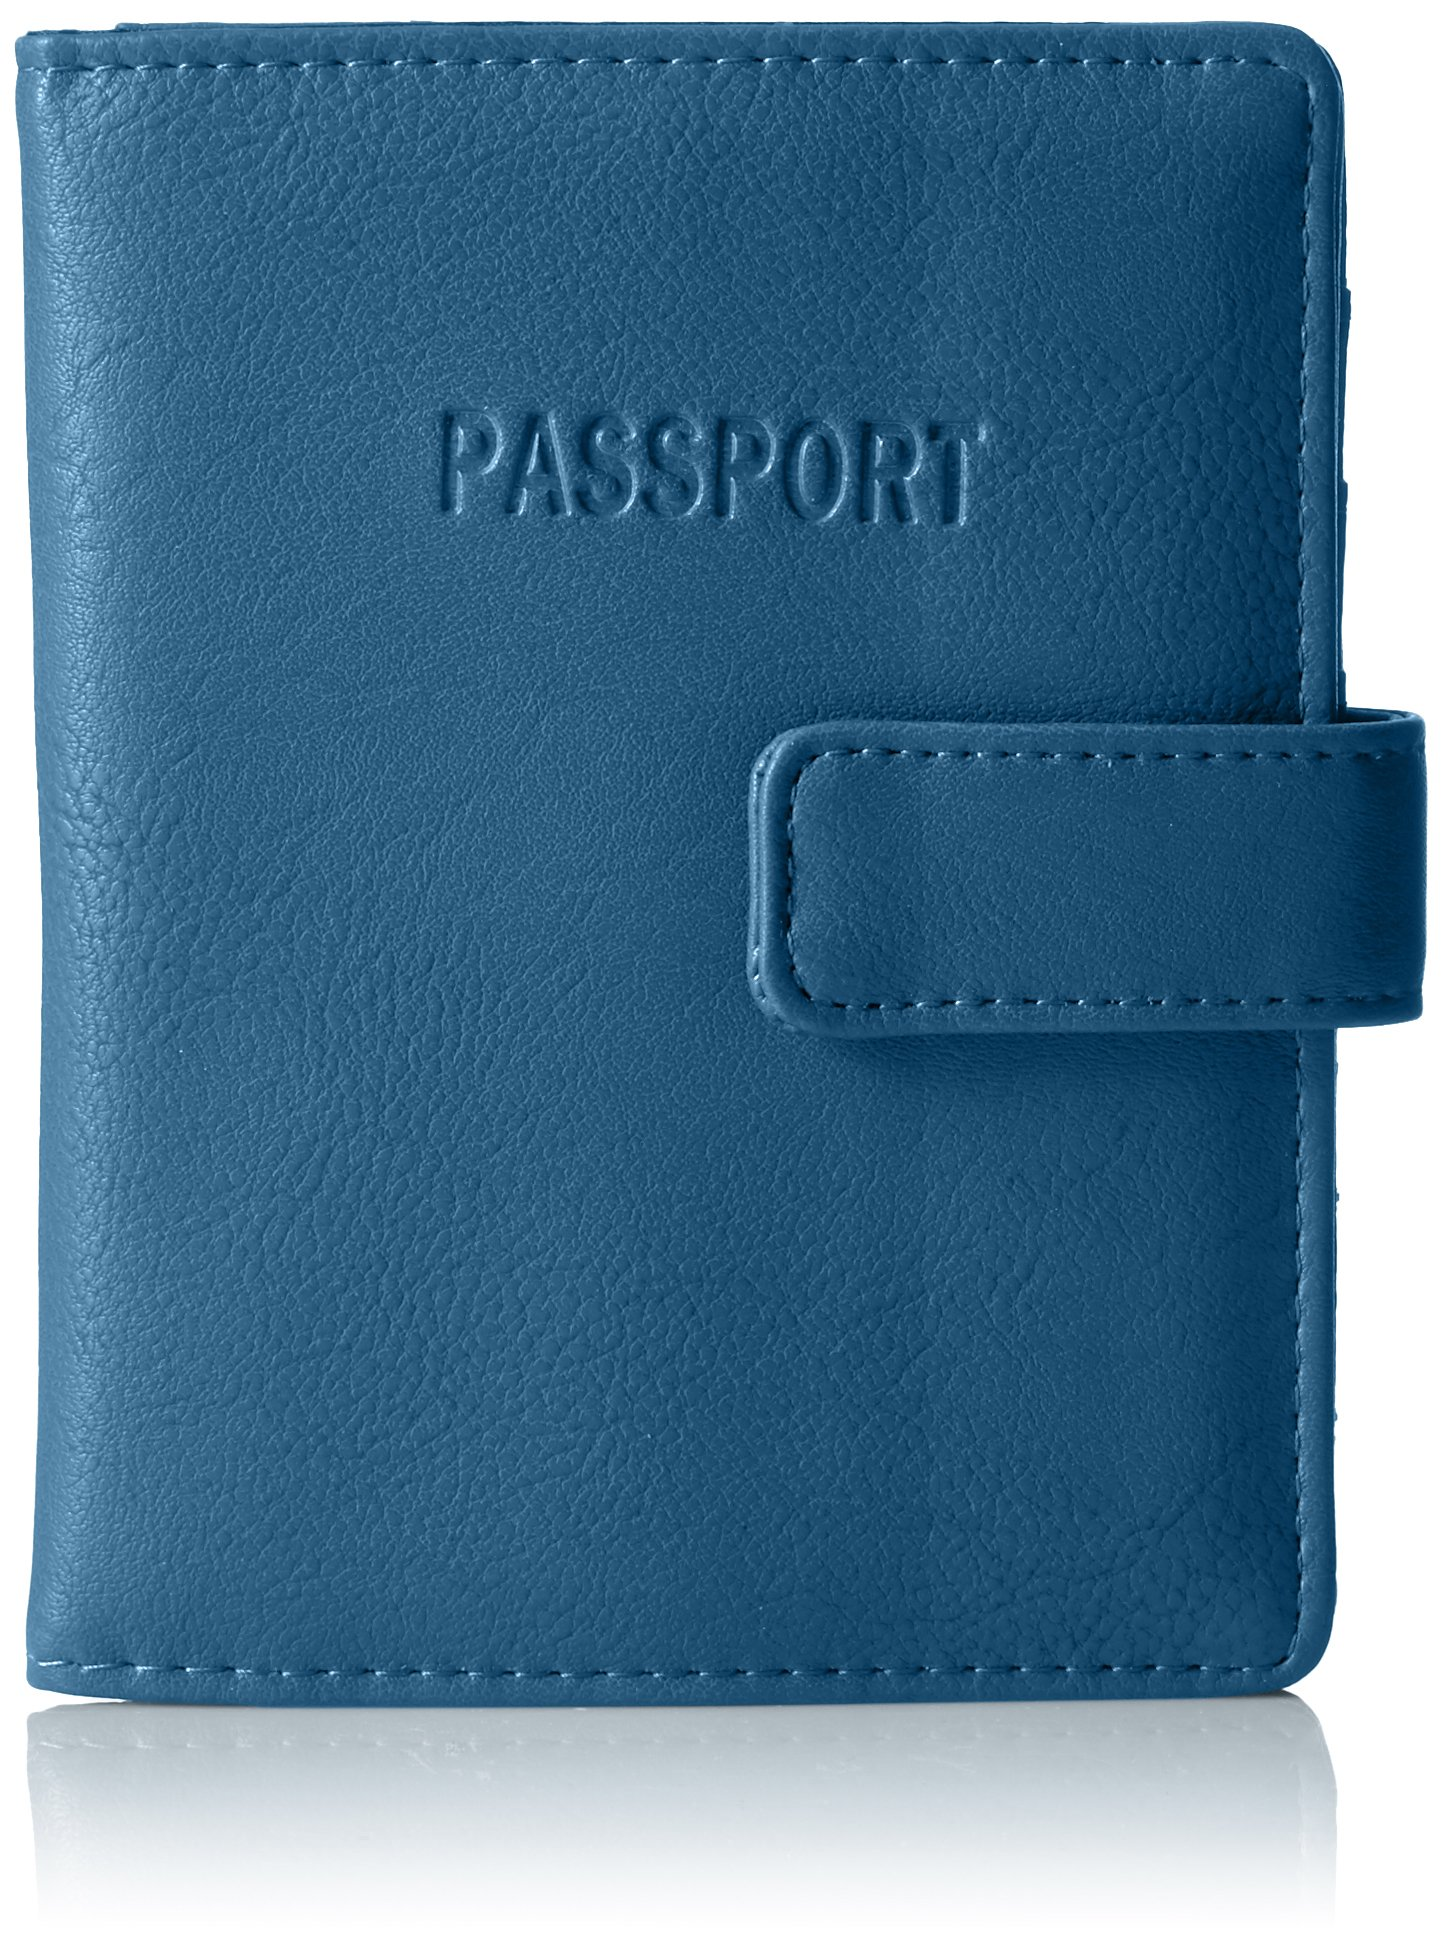 Core Deluxe Passport Wallet With Rfid Blocking Wallet, Seaglass, One Size